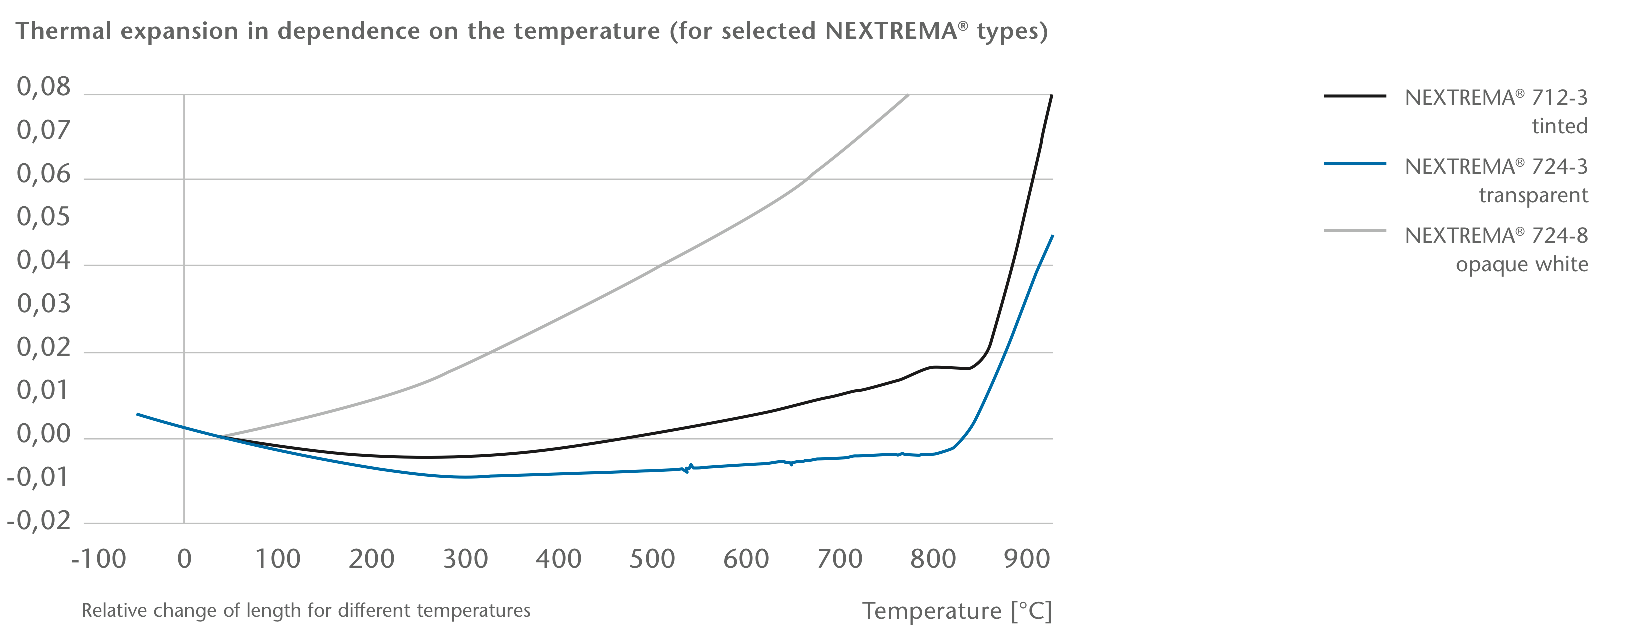 schott-nextrema-thermal-expansion.png